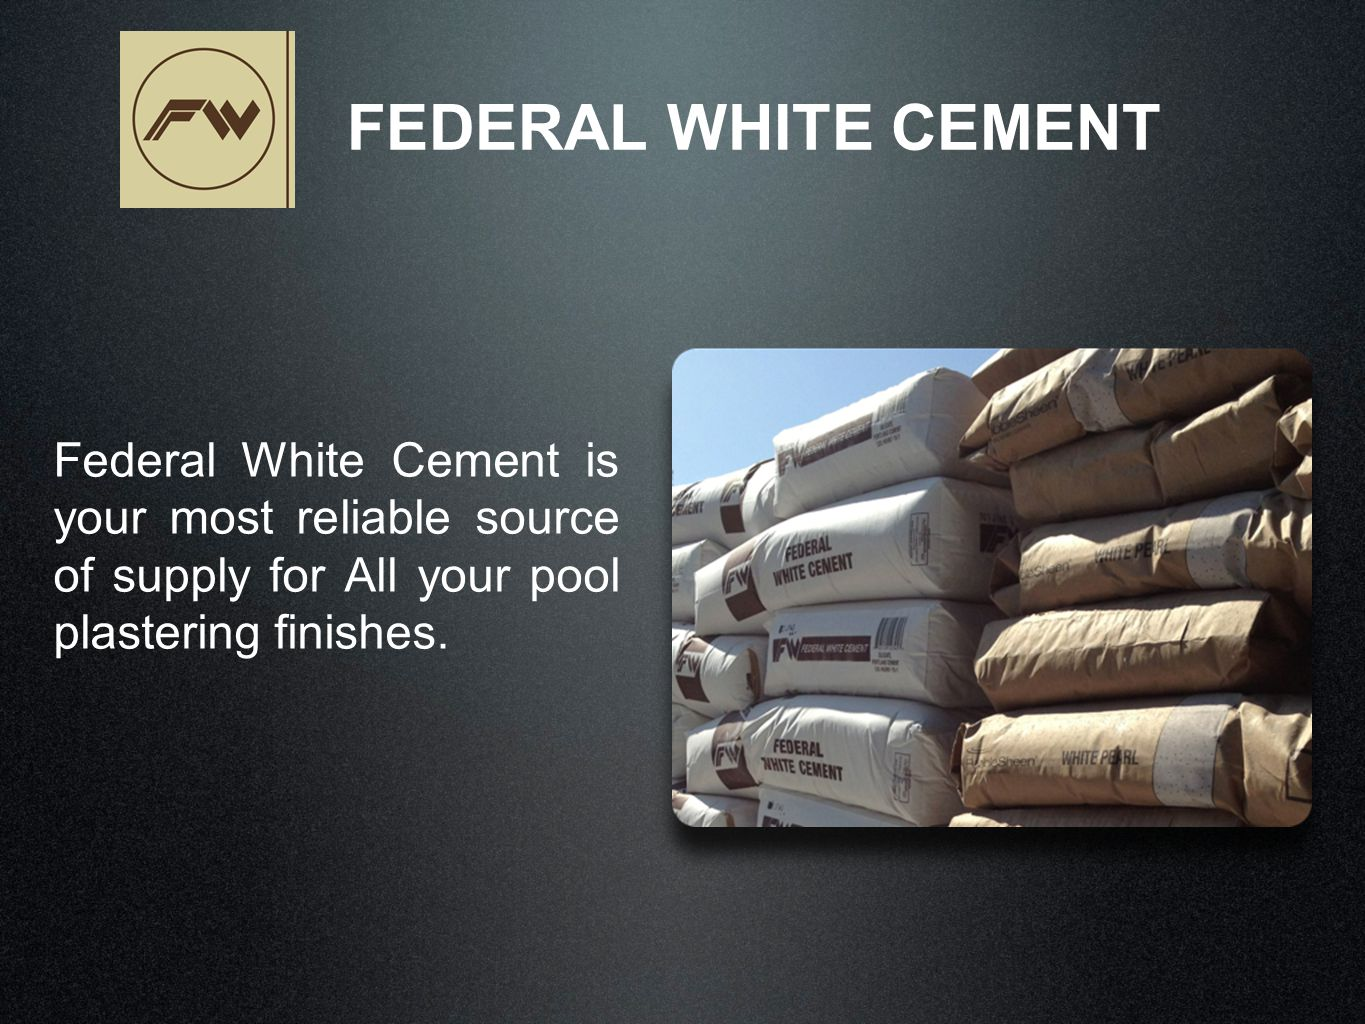 FEDERAL WHITE CEMENT Federal White Cement is your most reliable source of supply for All your pool plastering finishes.